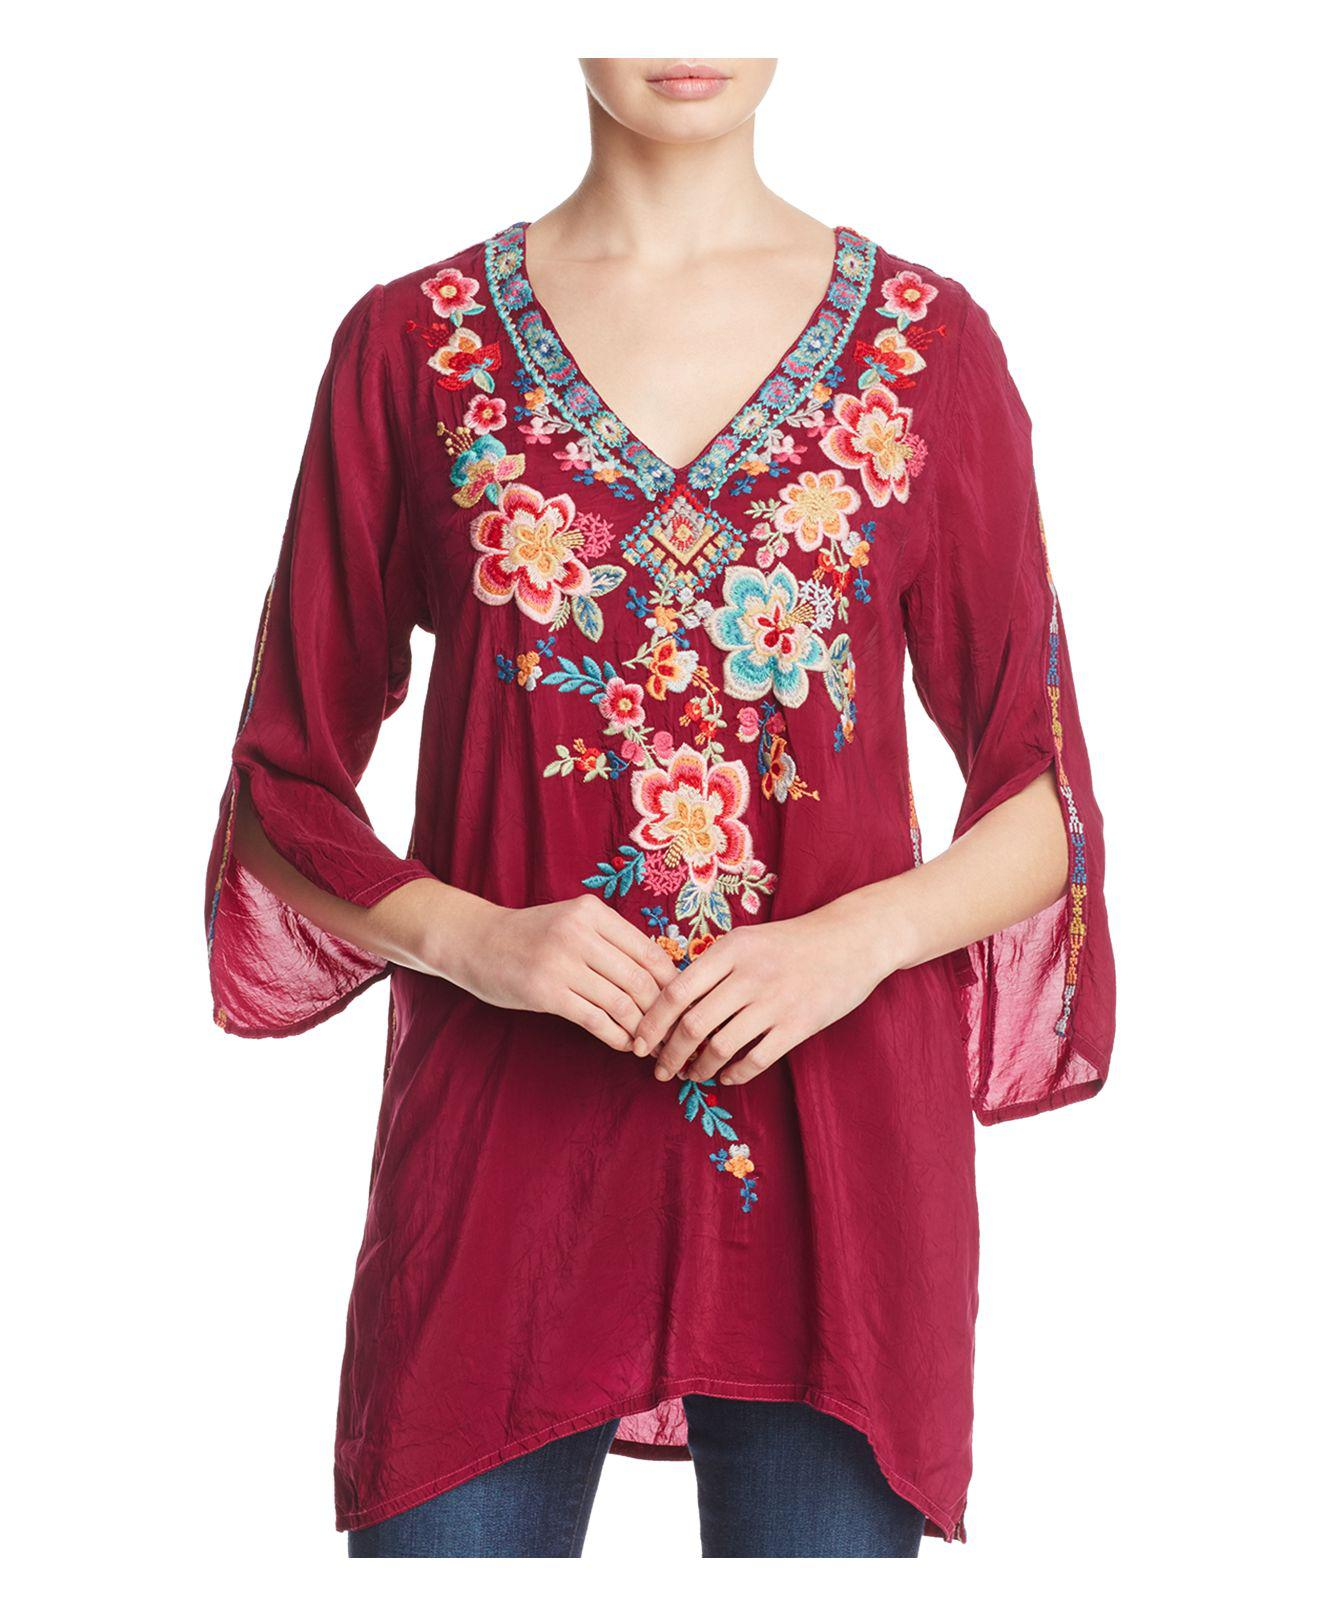 Johnny Was Roma Floral Embroidered Tunic - Lyst